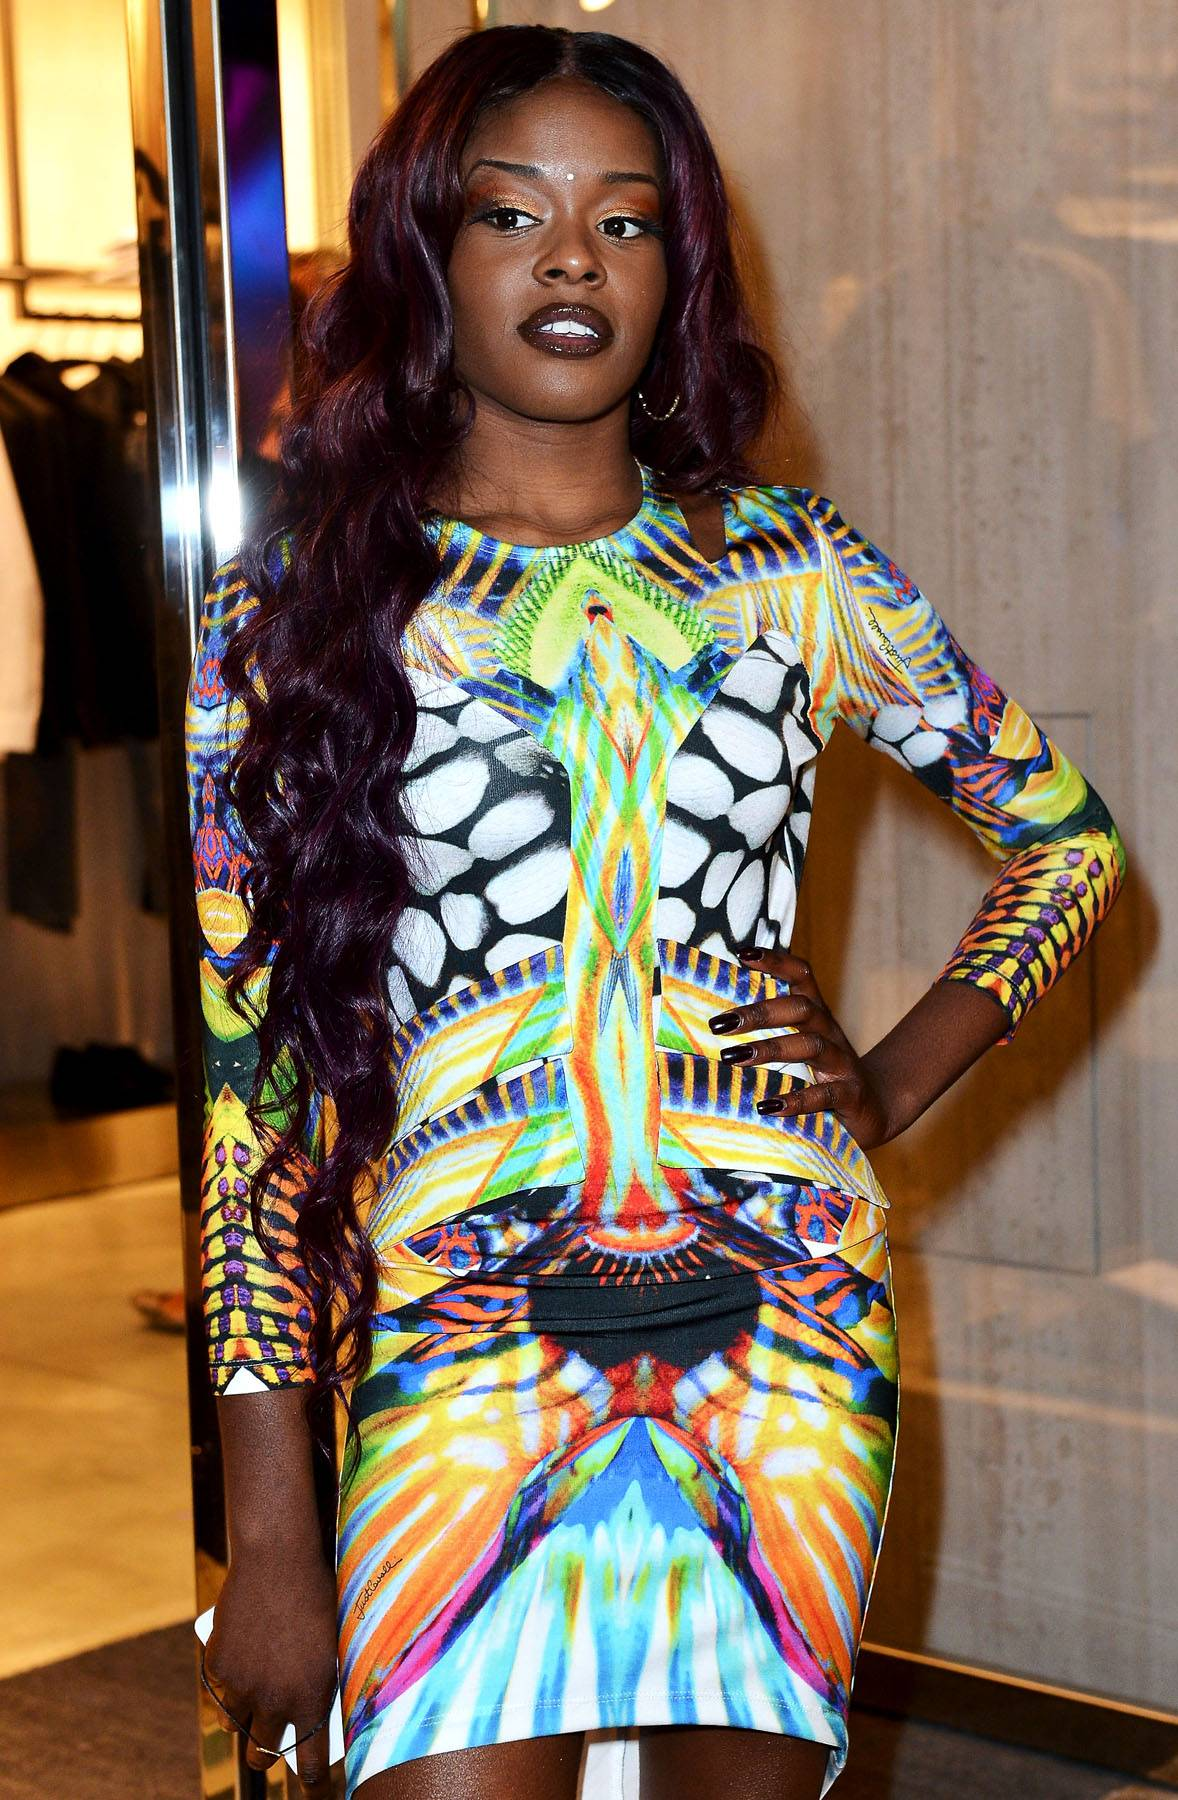 """Dolce & Gabbana - While most of Azealia Banks'sbeefs seem pointless, this one we can get behind: The Harlem rapper lashed out at Italian designer Dolce & Gabbana for their Spring 2013 collection, which featured imagery of Black women that recalled old Jim Crow-era stereotypes. """"Whoever designed that racist a** Dolce and Gabanna collection needs a swift kick in the mouth and a big d**k up the a**,"""" Banks tweeted. """"I really hate when people do corny, racist things then try to justify it as 'art.' It's all just really unnecessary. The clothes in the collection were fine without all the 'black mammie' imagery."""" (Photo: Tullio M. Puglia/Getty Images)"""